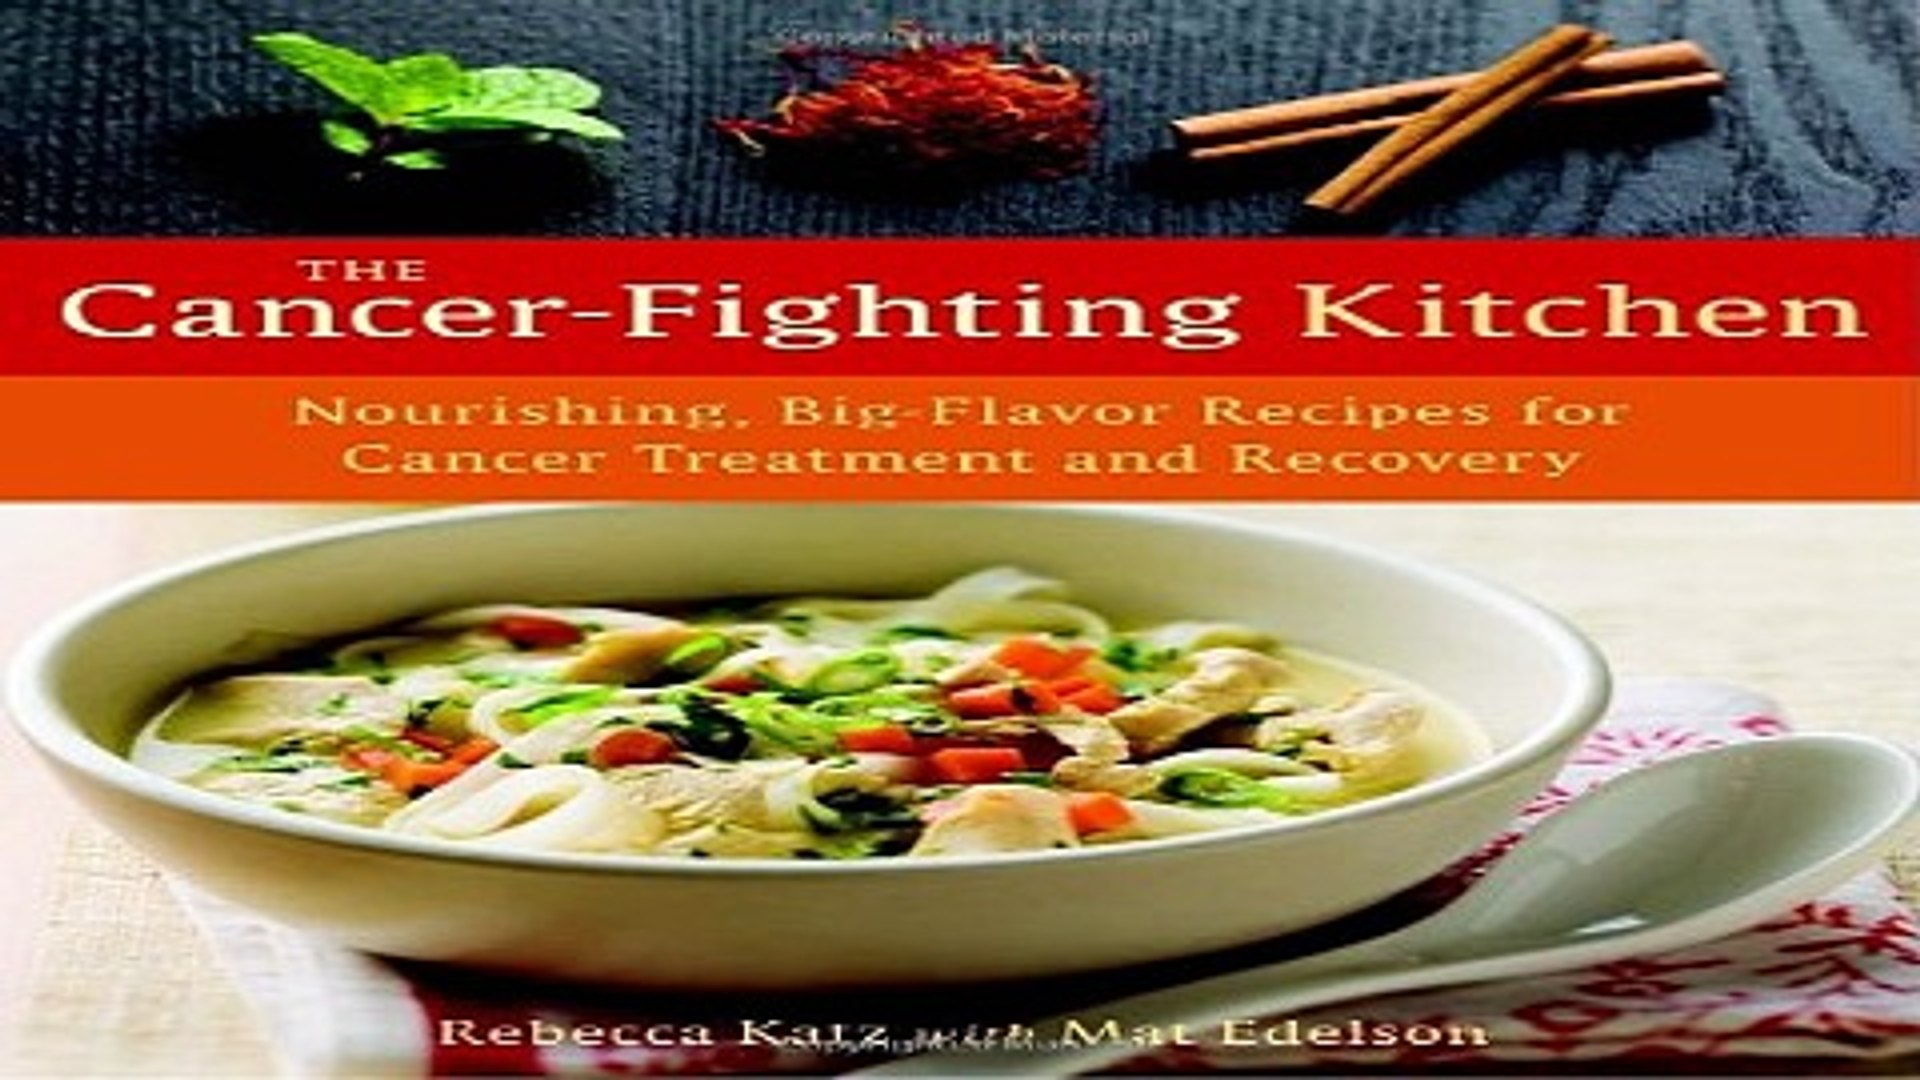 Read The Cancer Fighting Kitchen Nourishing Big Flavor Recipes for Cancer  Treatment and Recovery